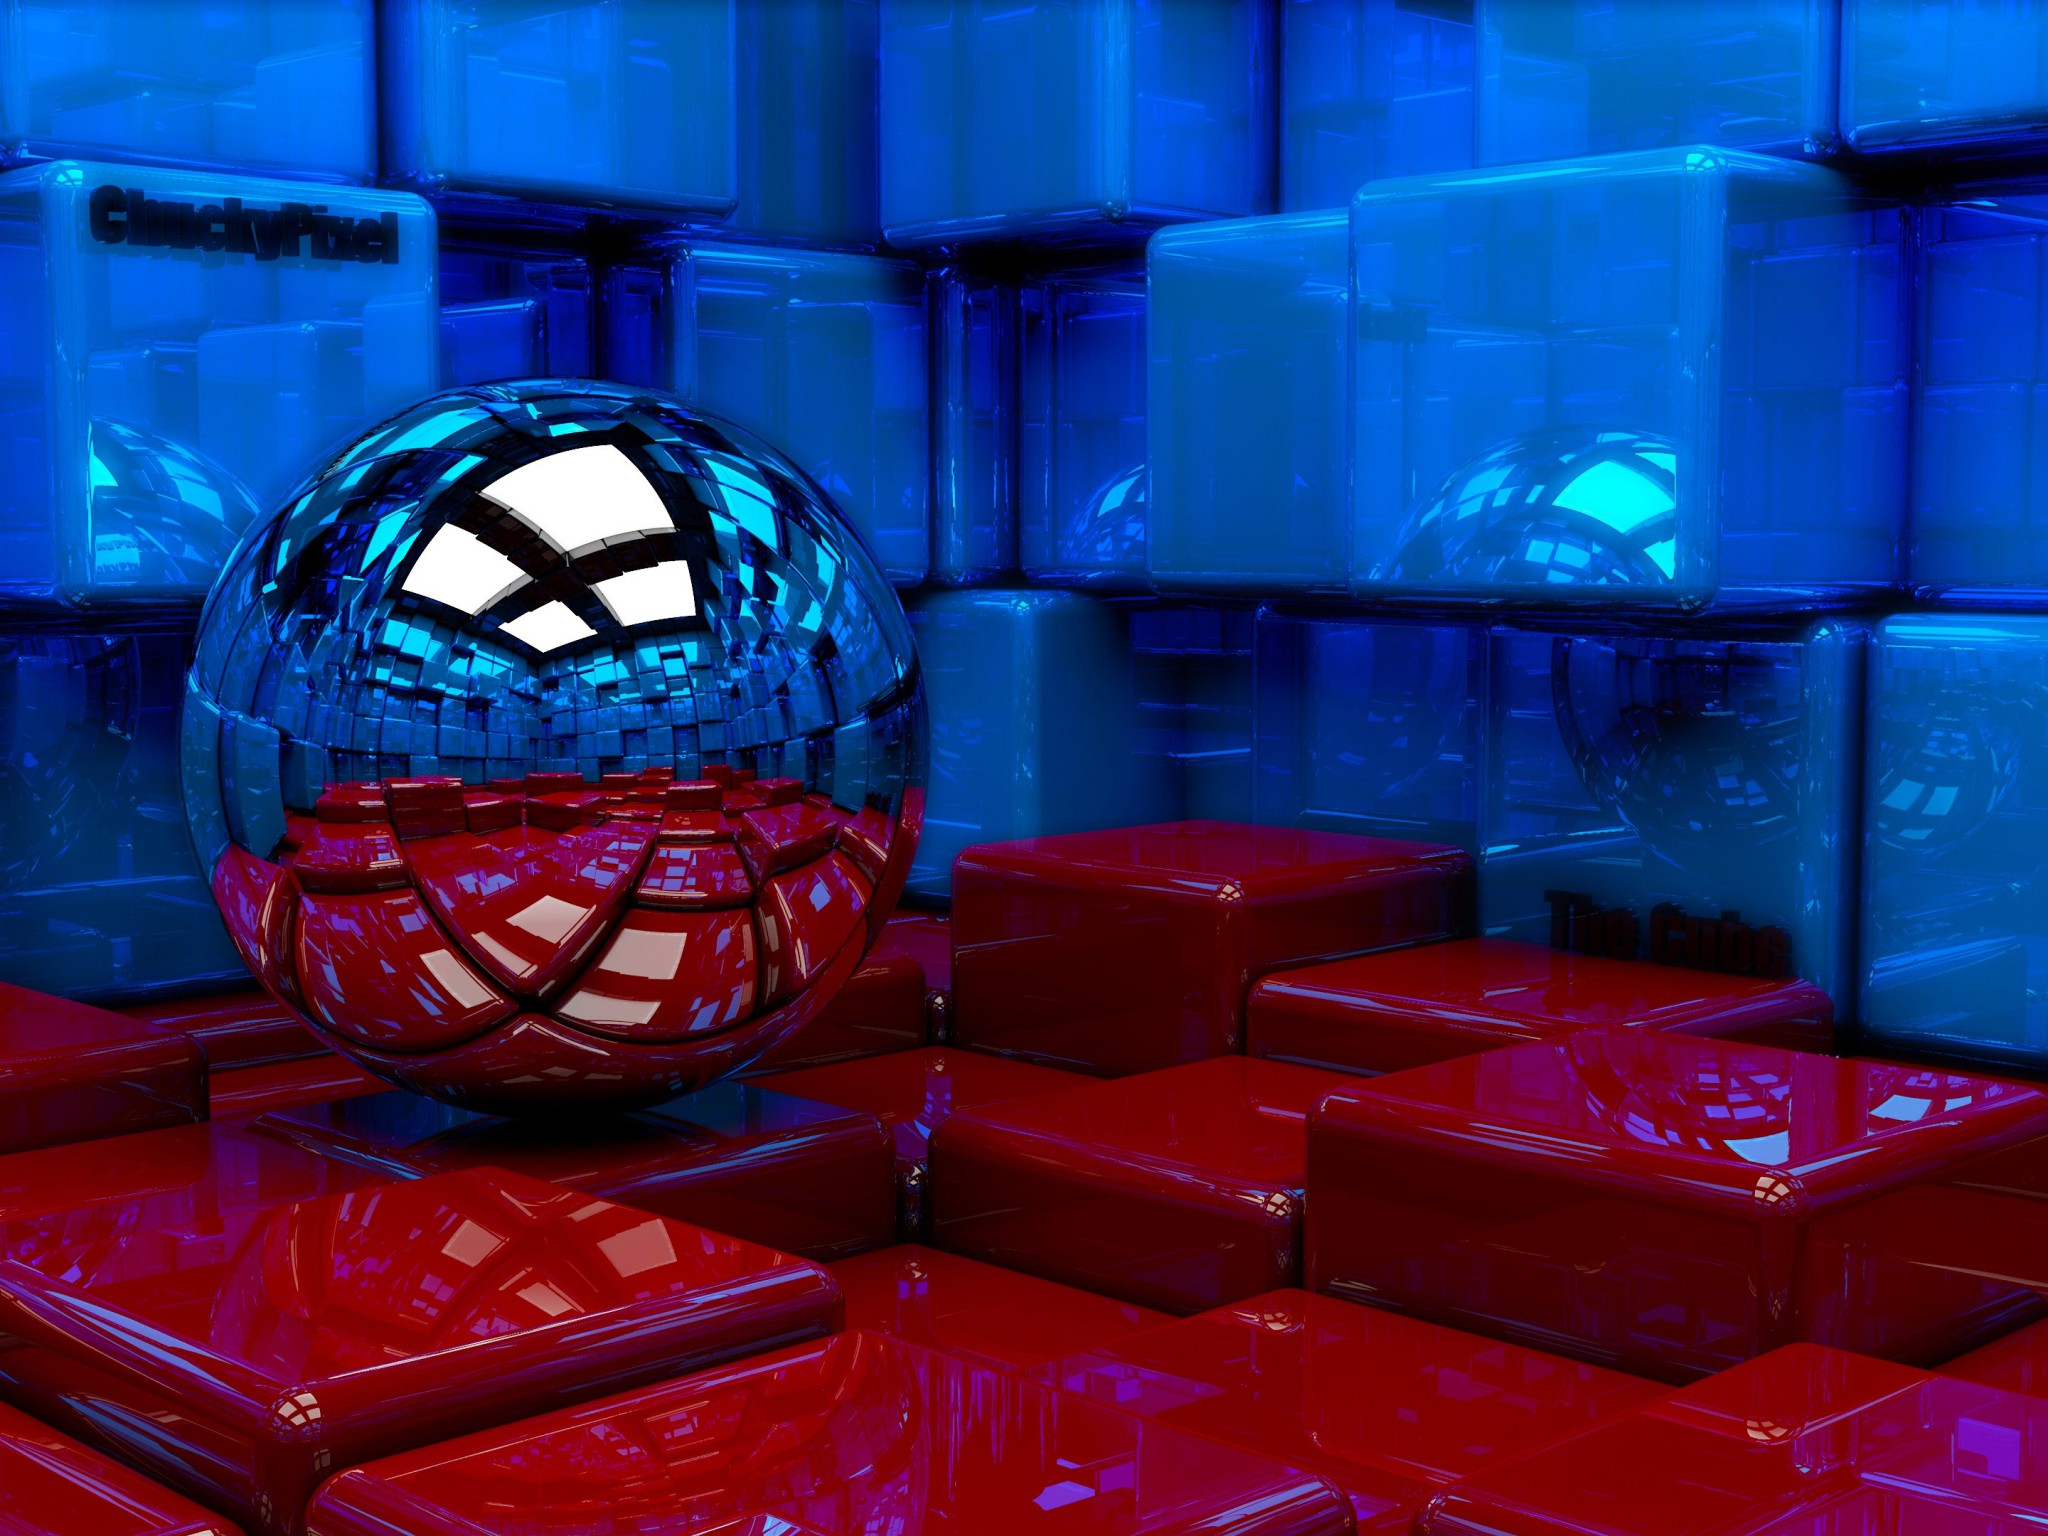 Ball Cubes Metal Blue Red Reflection 97785 3840x2160 HD Wallpapers